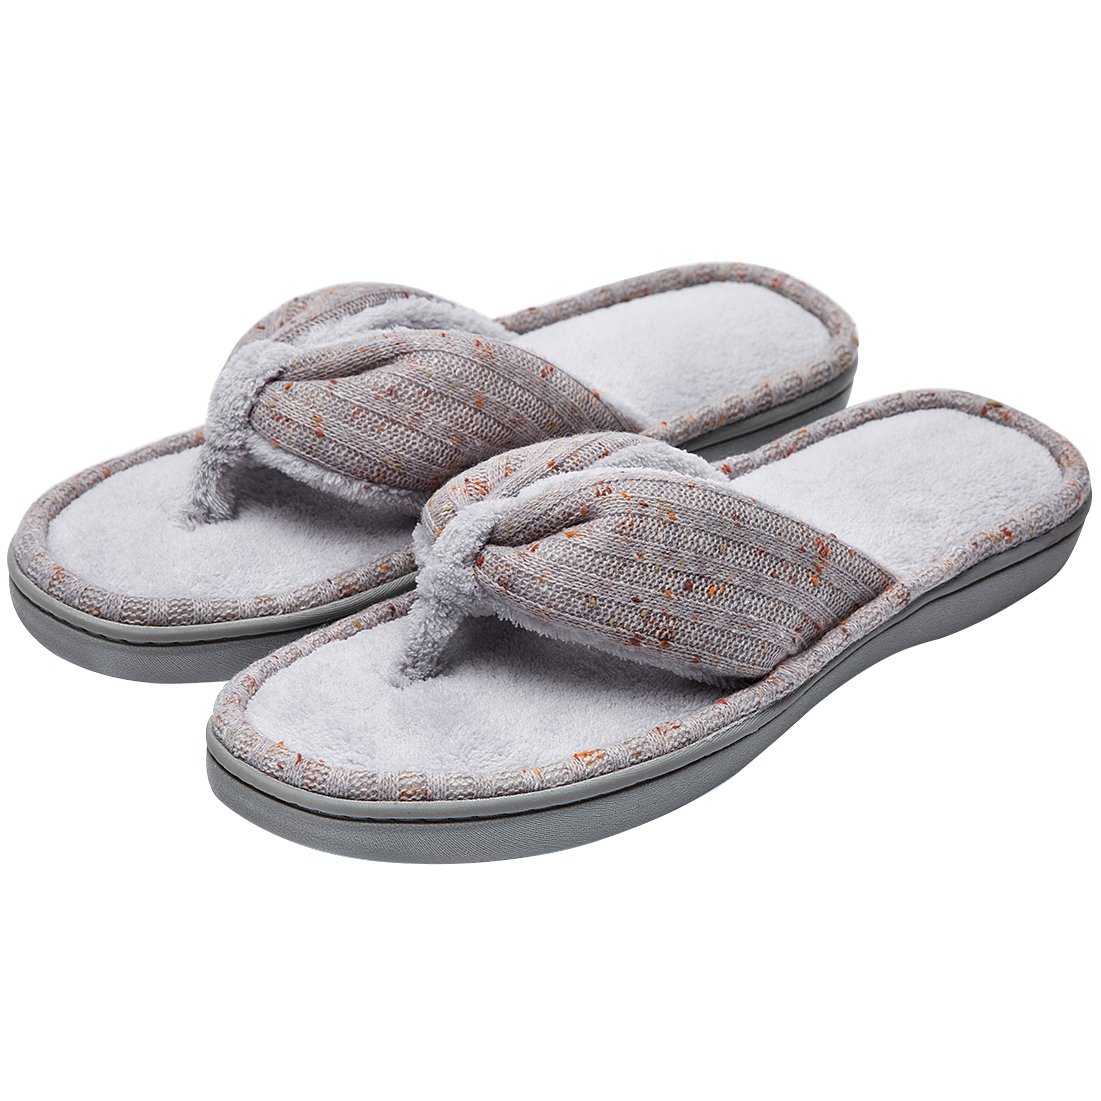 Women's Soft & Comfy Knitted Plush Fleece Lining Memory Foam Spa Thong Flip Flops House Slippers (Medium/7-8 B(M) US, Gray)